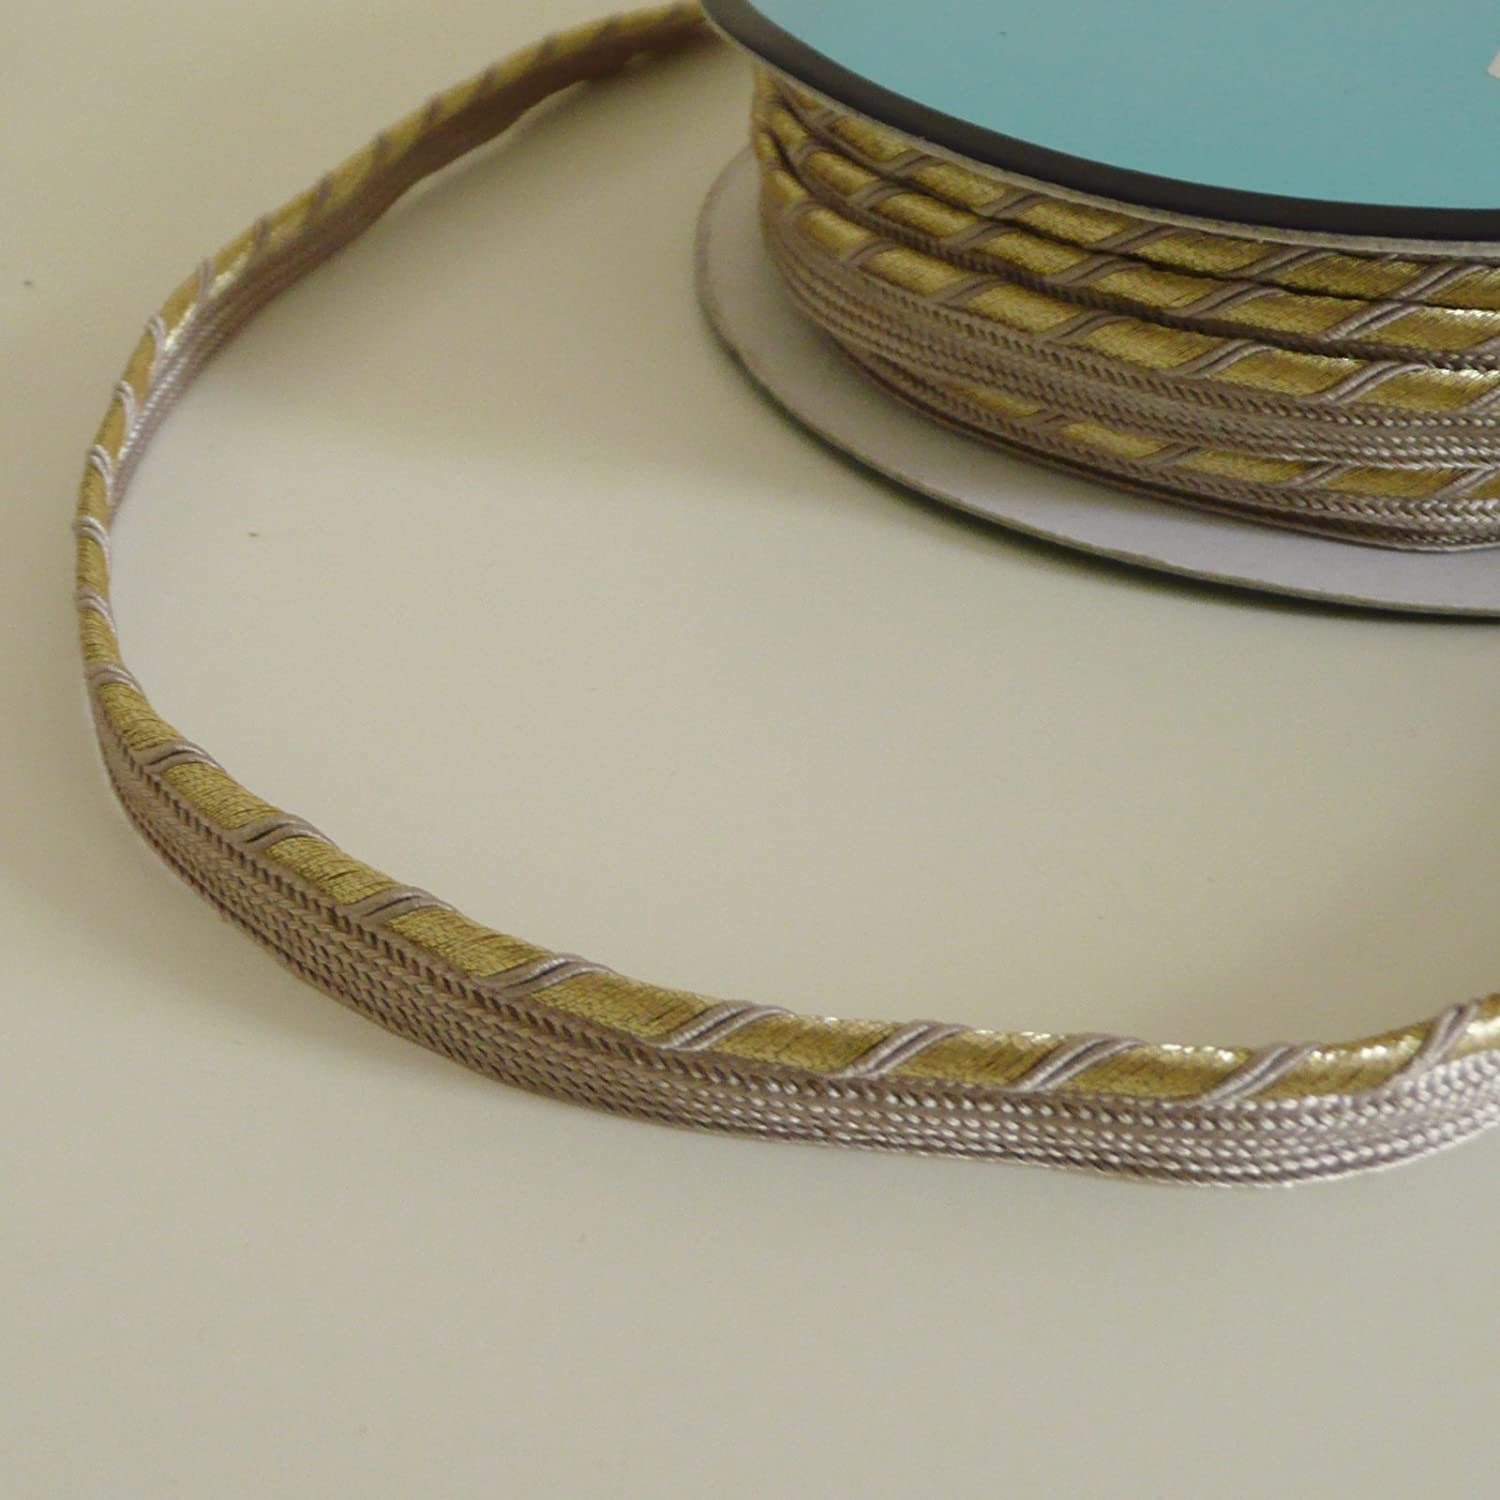 luxury braid Twisted Gold lurex flanged insert piping cord trim sold by the metre Beige